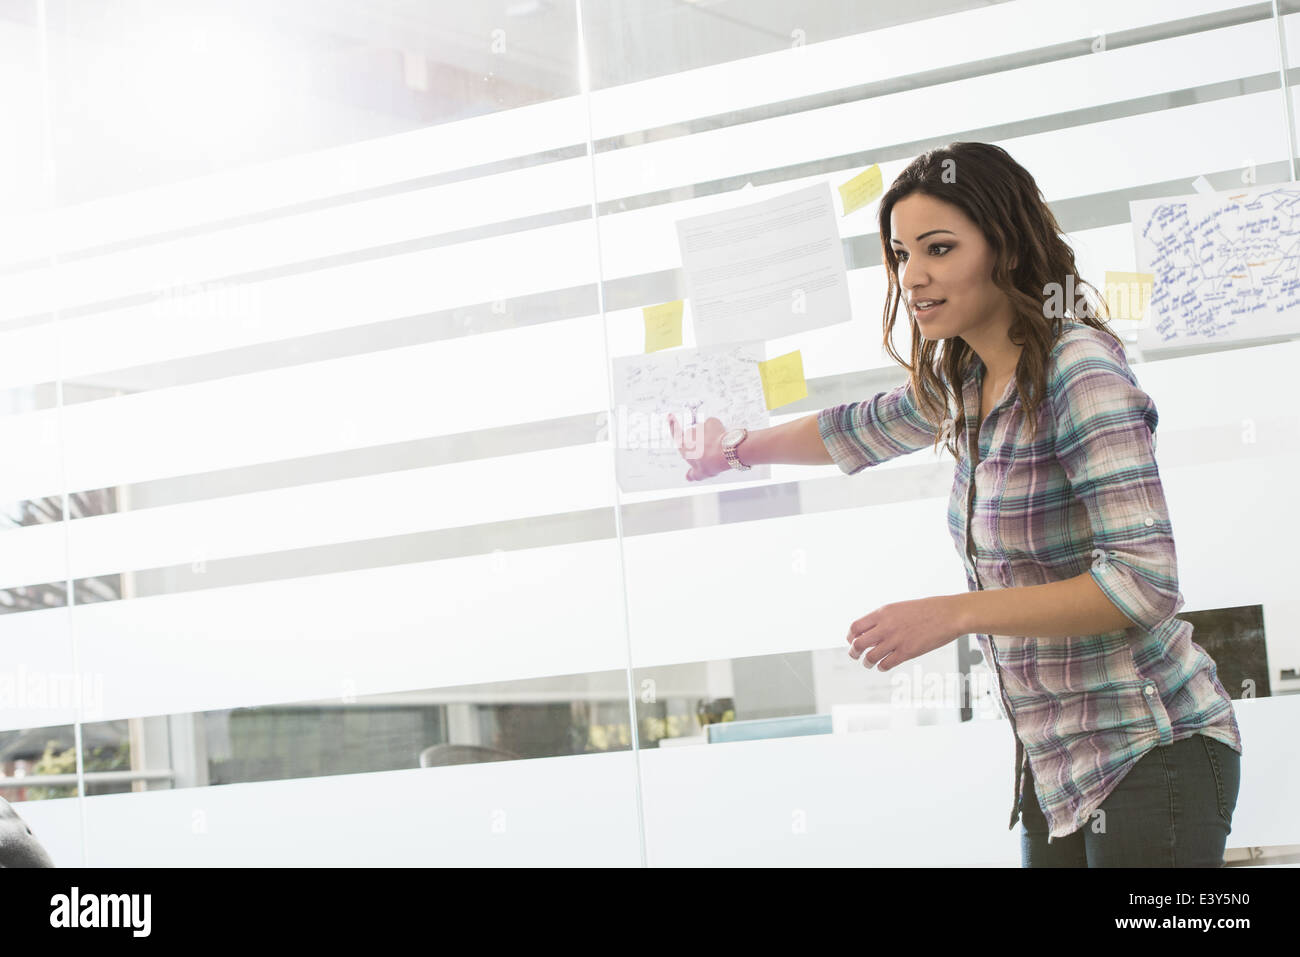 Young businesswoman presenting ideas on office window - Stock Image